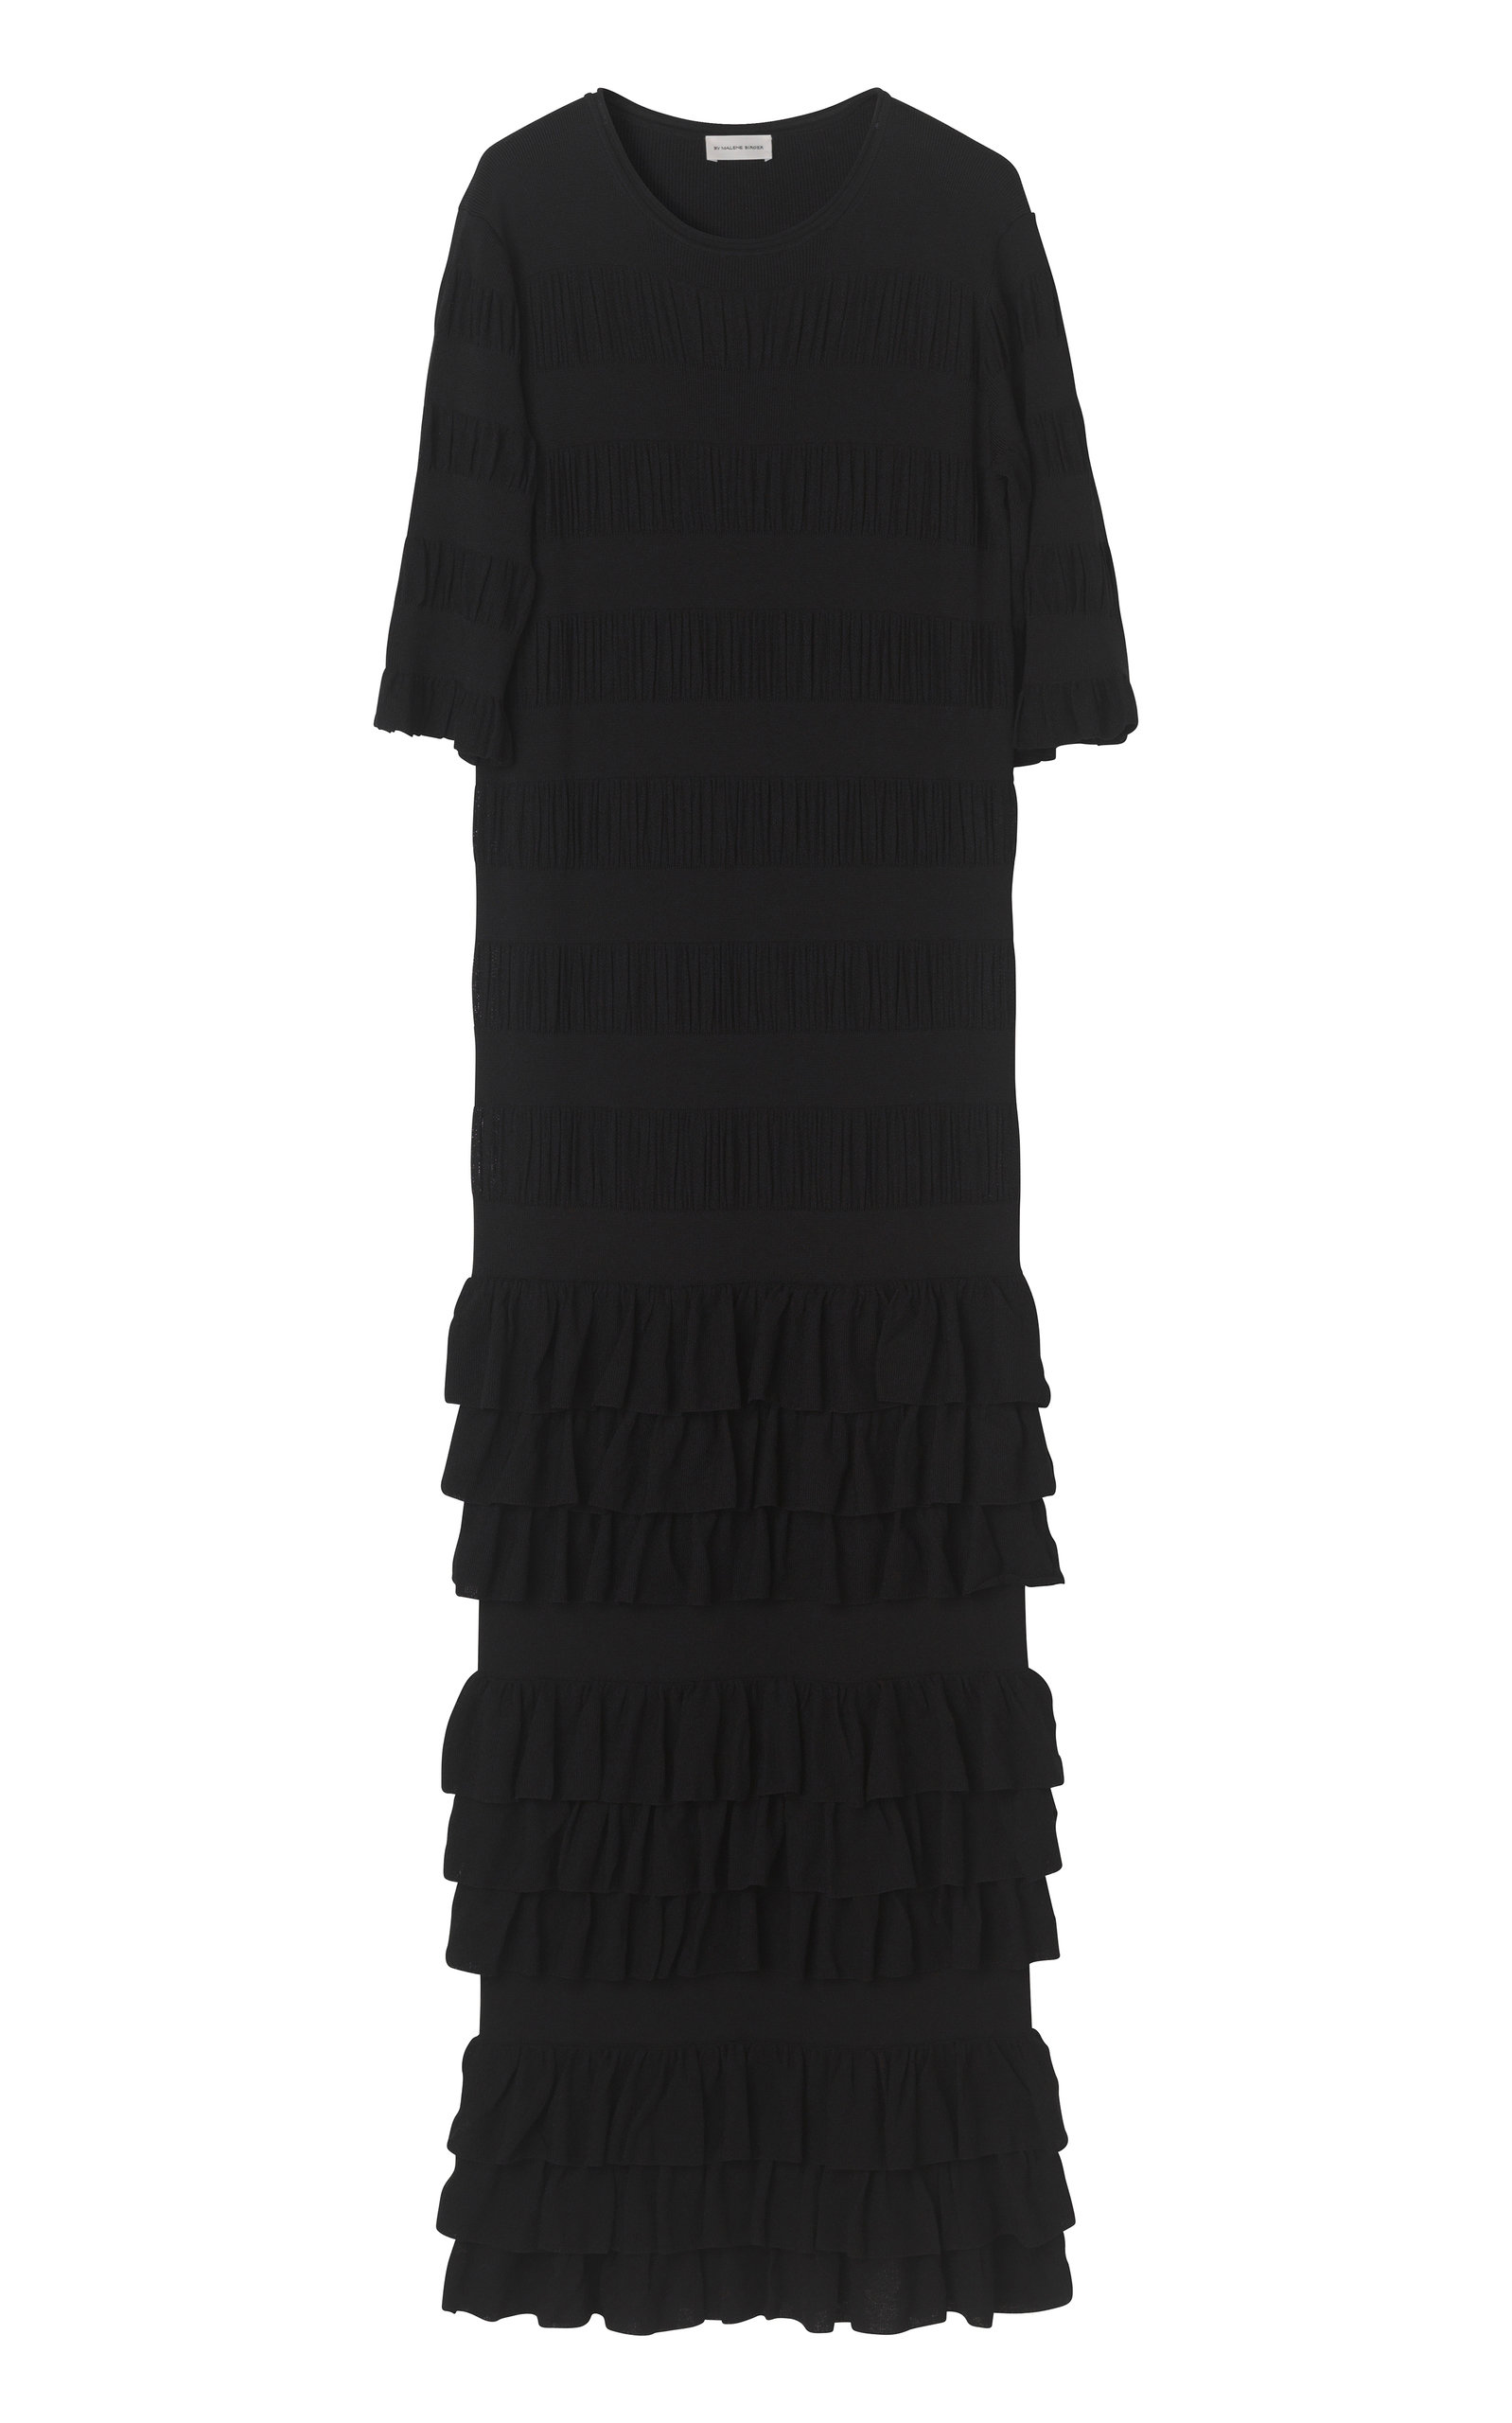 Buy By Malene Birger Exellia Ribbon Knits Dress online, shop By Malene Birger at the best price